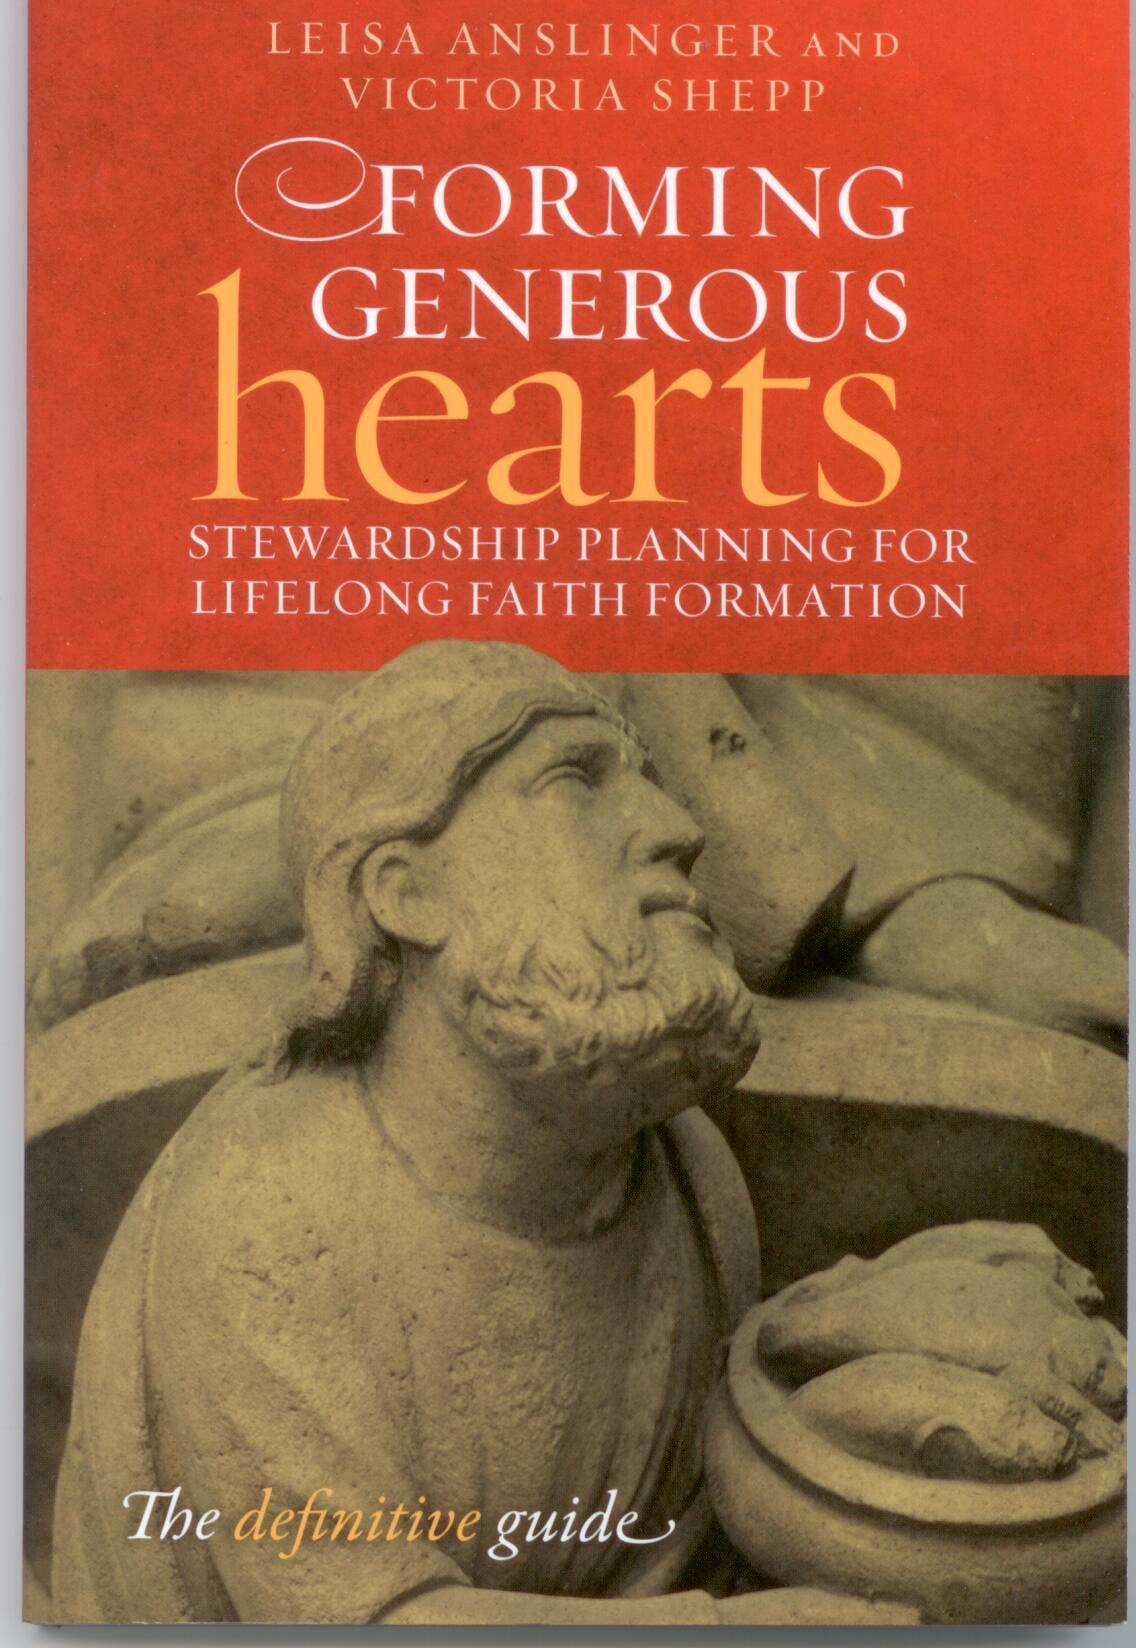 Forming Generous Hearts by Leisa Anslinger 108-9781585956425